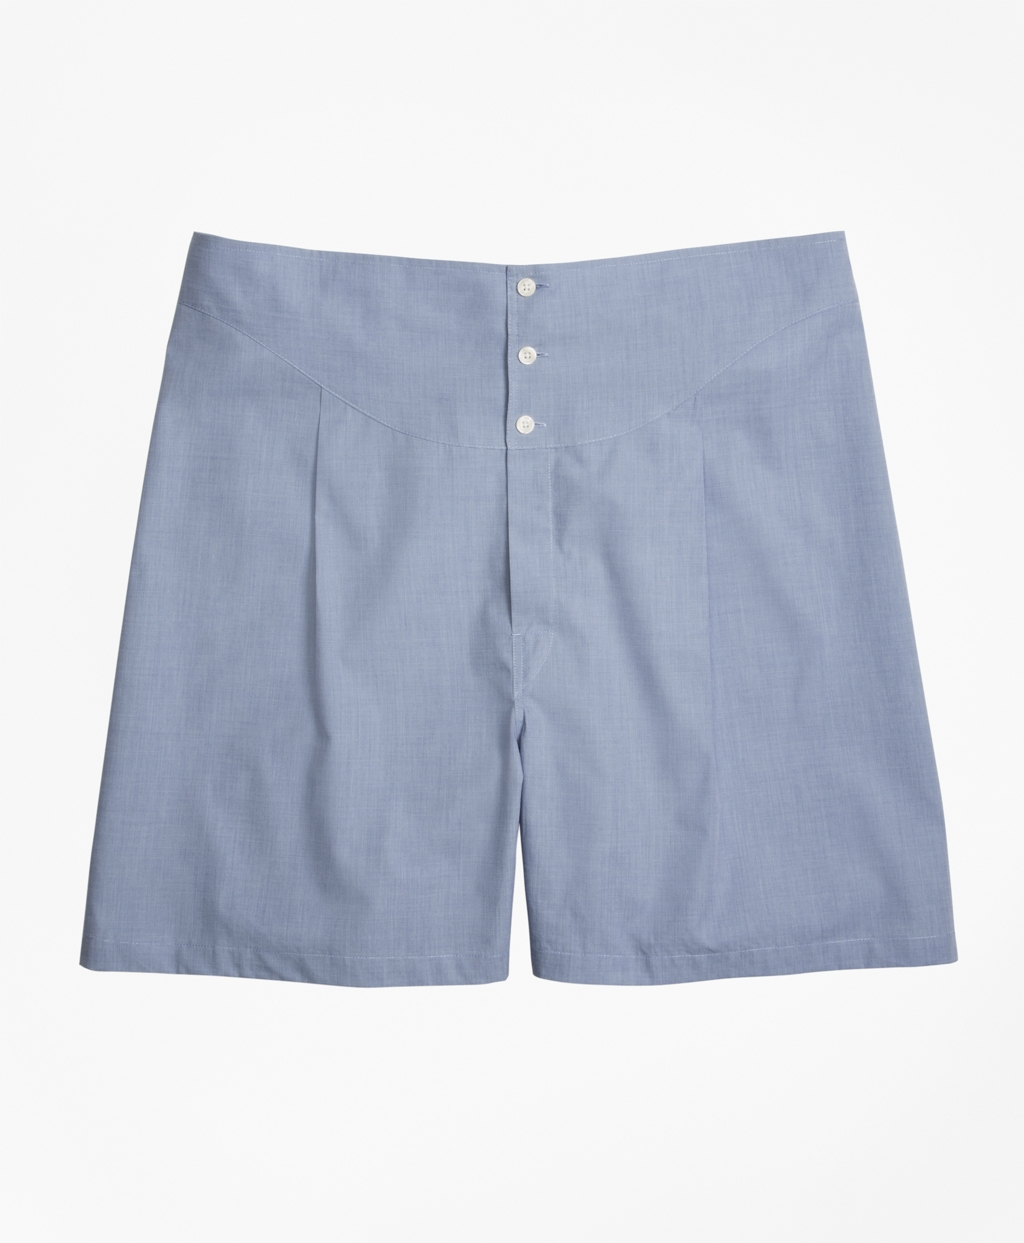 1950s Men's Clothing Tie Back Boxers $30.00 AT vintagedancer.com